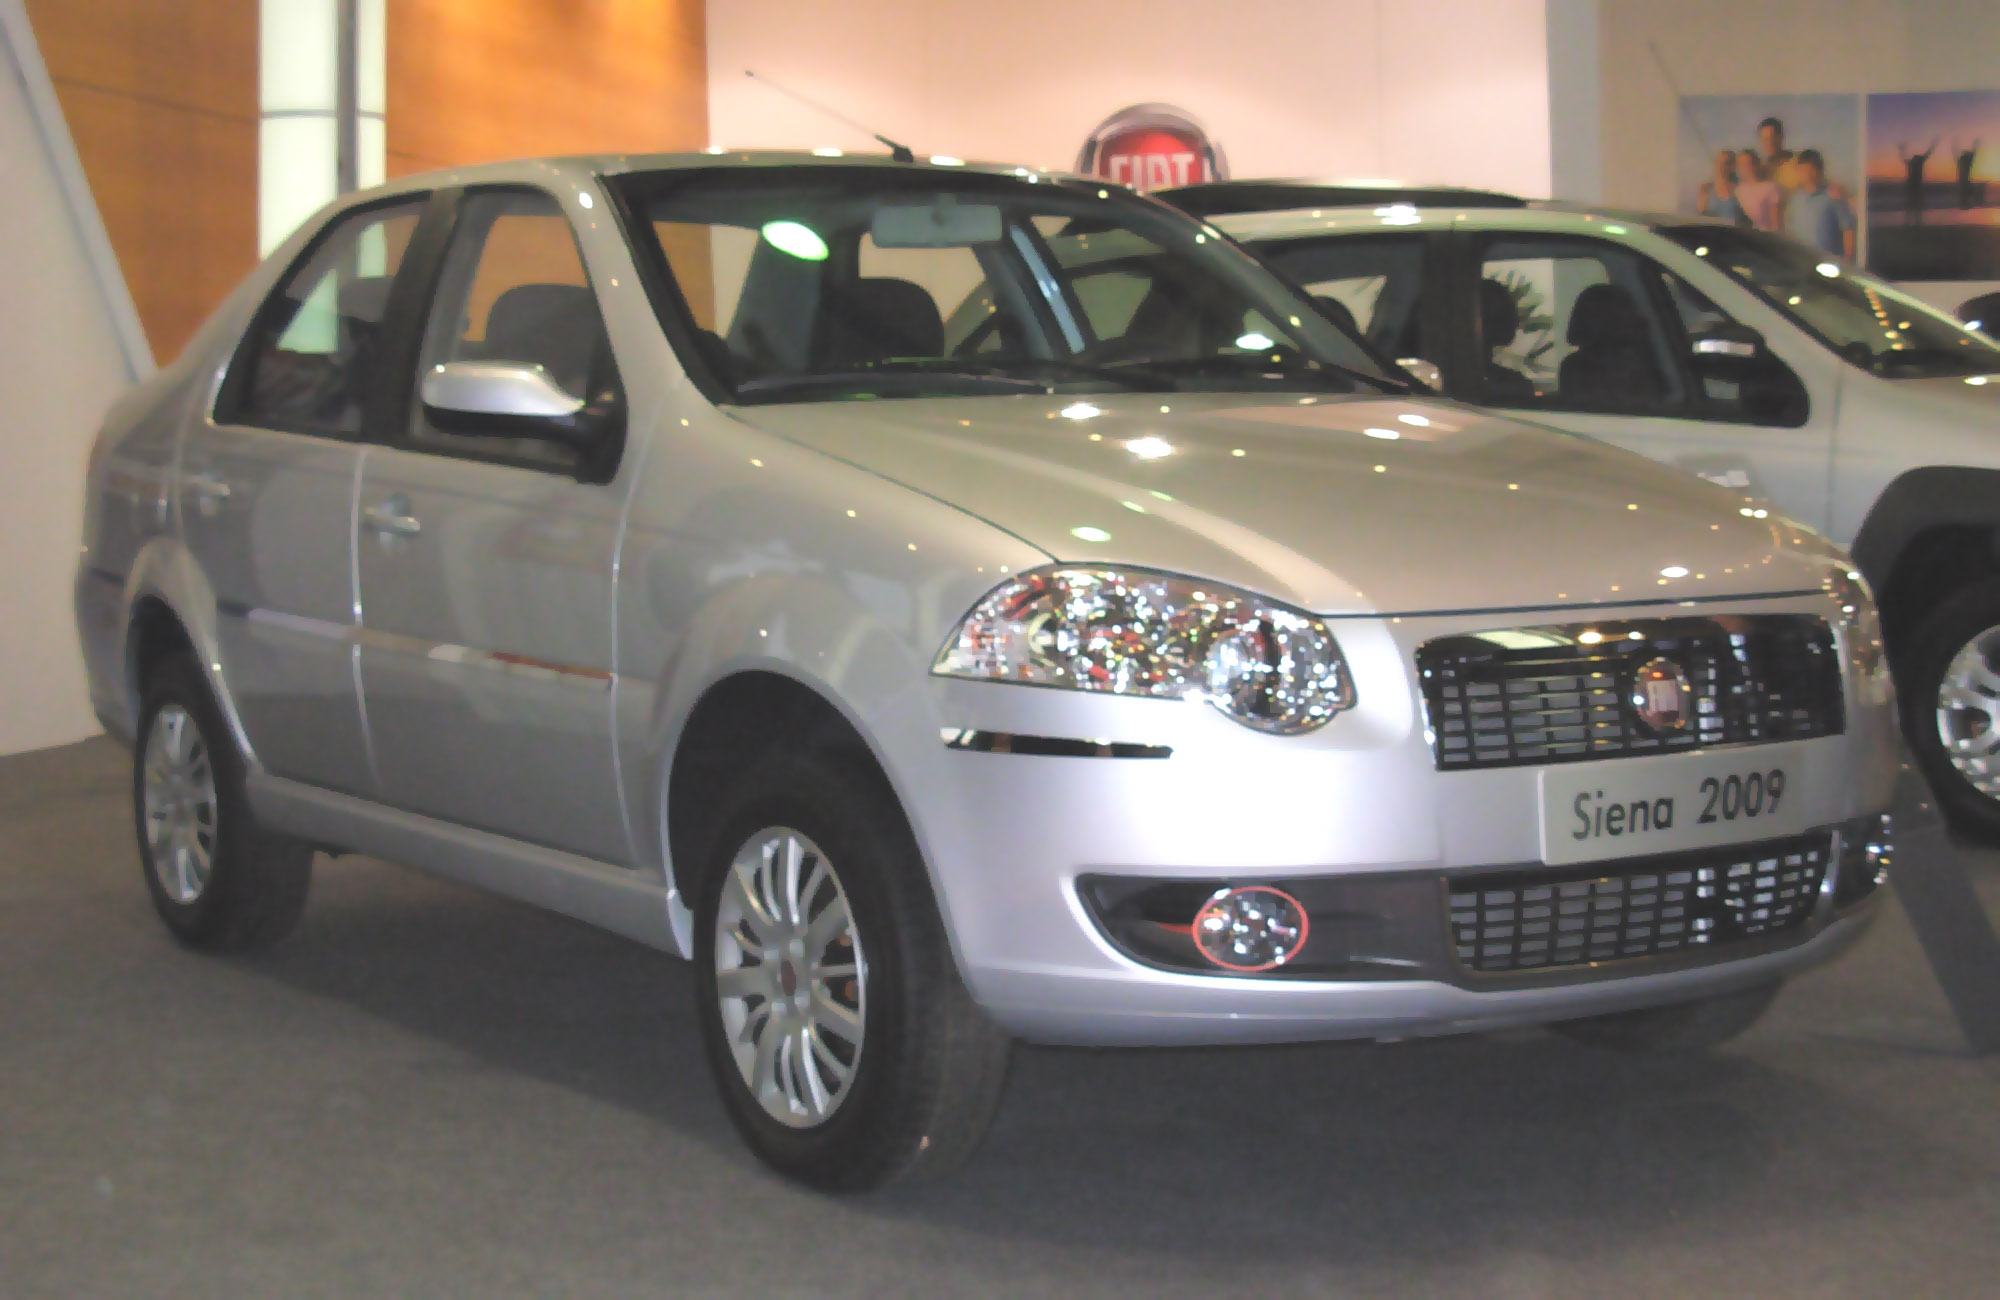 Archivo Fiat Siena 2009 front   2008 Montevideo Motor Show additionally Watch also Watch additionally Watch as well Fiat Tempra 2 0 1993 Specs And Images. on fiat siena 2000